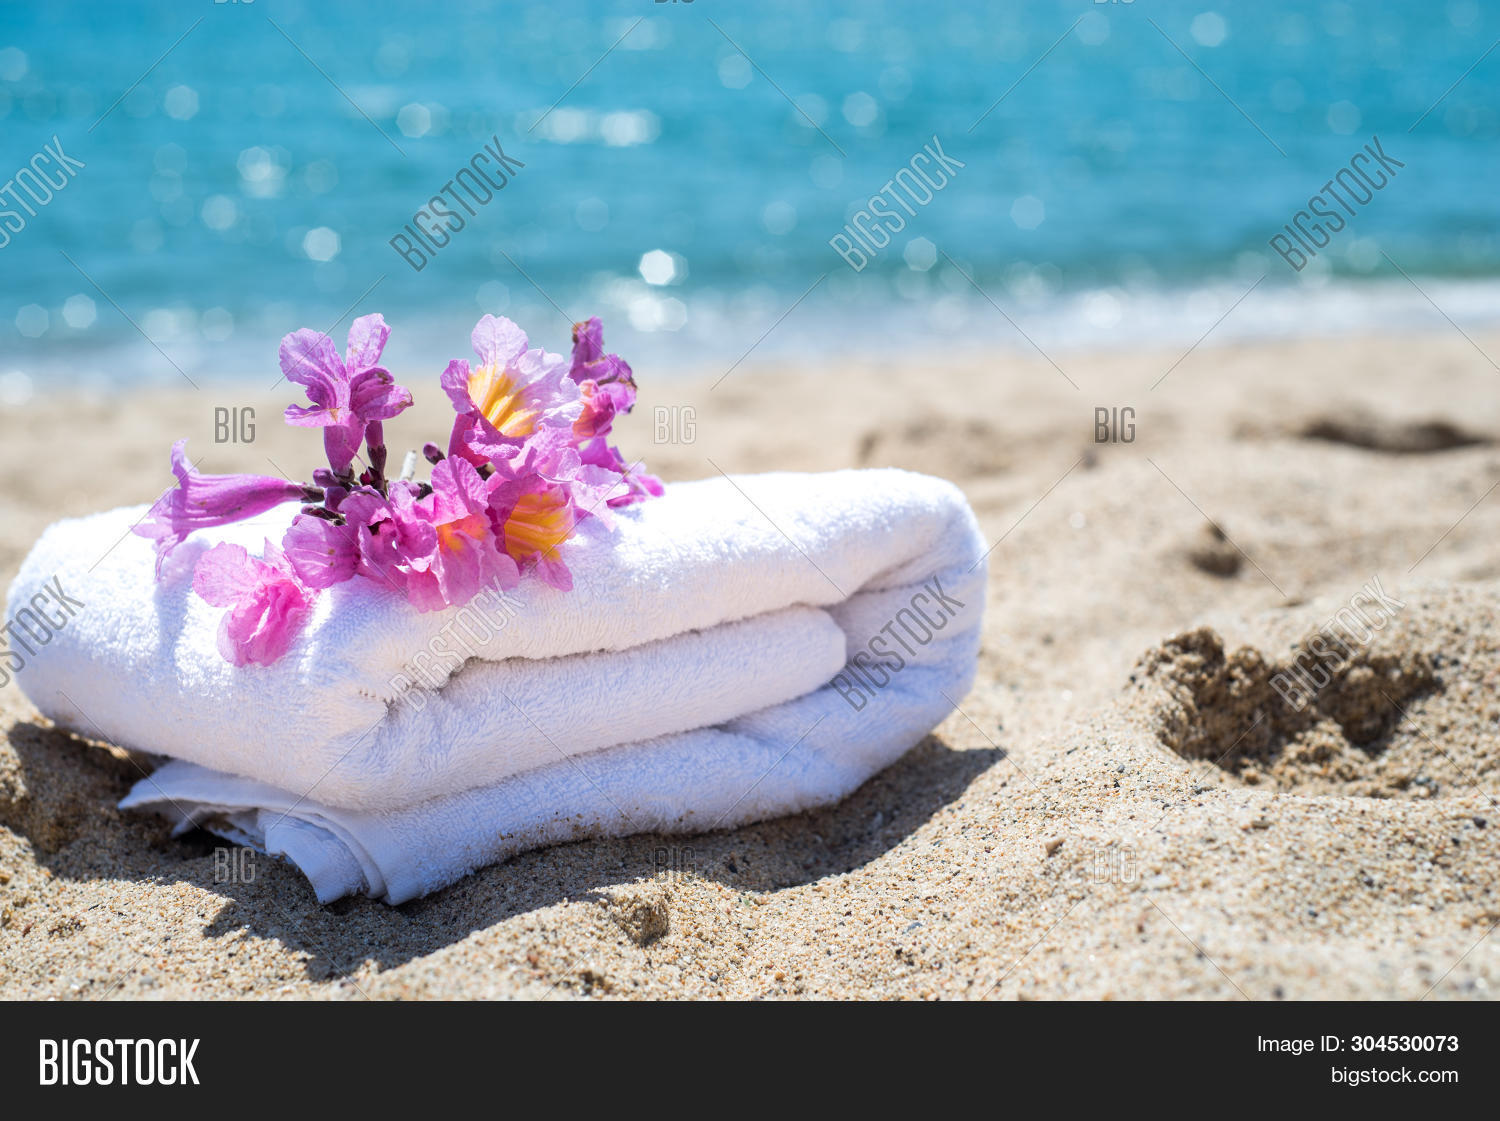 background,bathtub,beach,beauty,blue,concept,flower,green,holiday,hotel,lifestyle,luxury,nature,ocean,pool,relaxation,resort,sand,sea,spa,summer,towel,travel,vacation,view,water,white